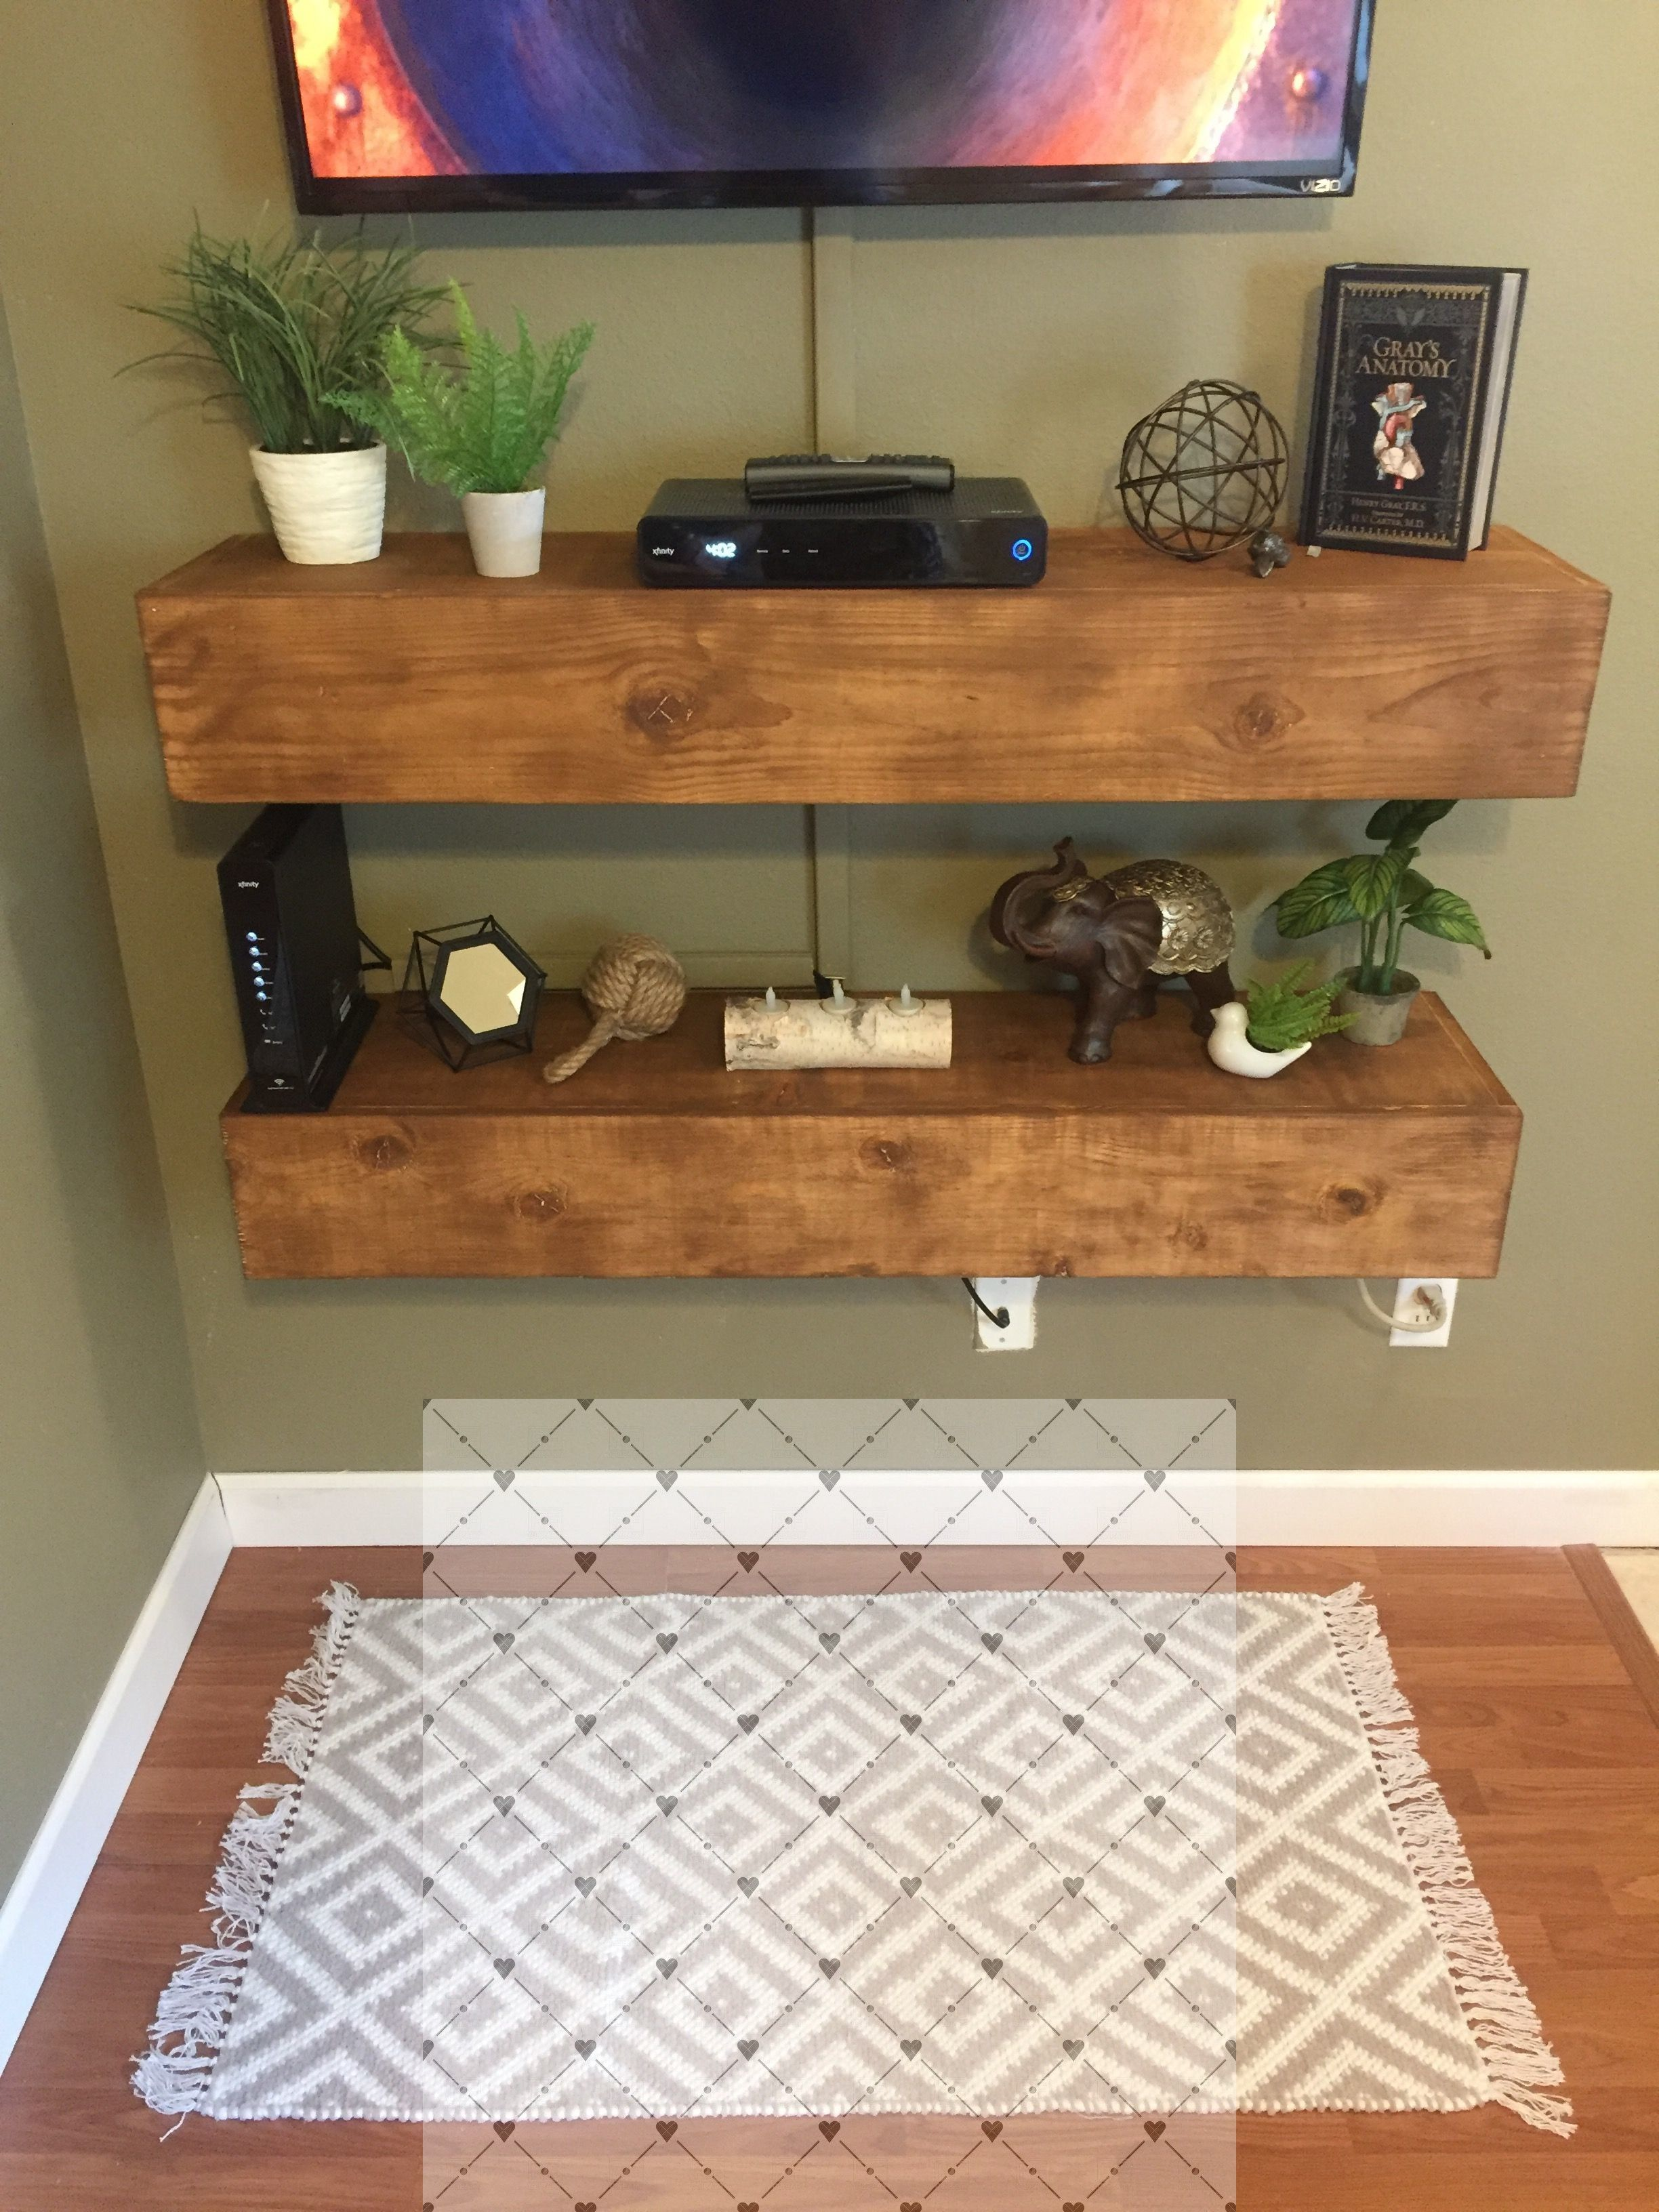 Easy And Cheap Tips Floating Shelf Placement Tv Stands Floating Shelves Around Tv M Floating Shelves Living Room Floating Shelf Decor Floating Shelves Kitchen